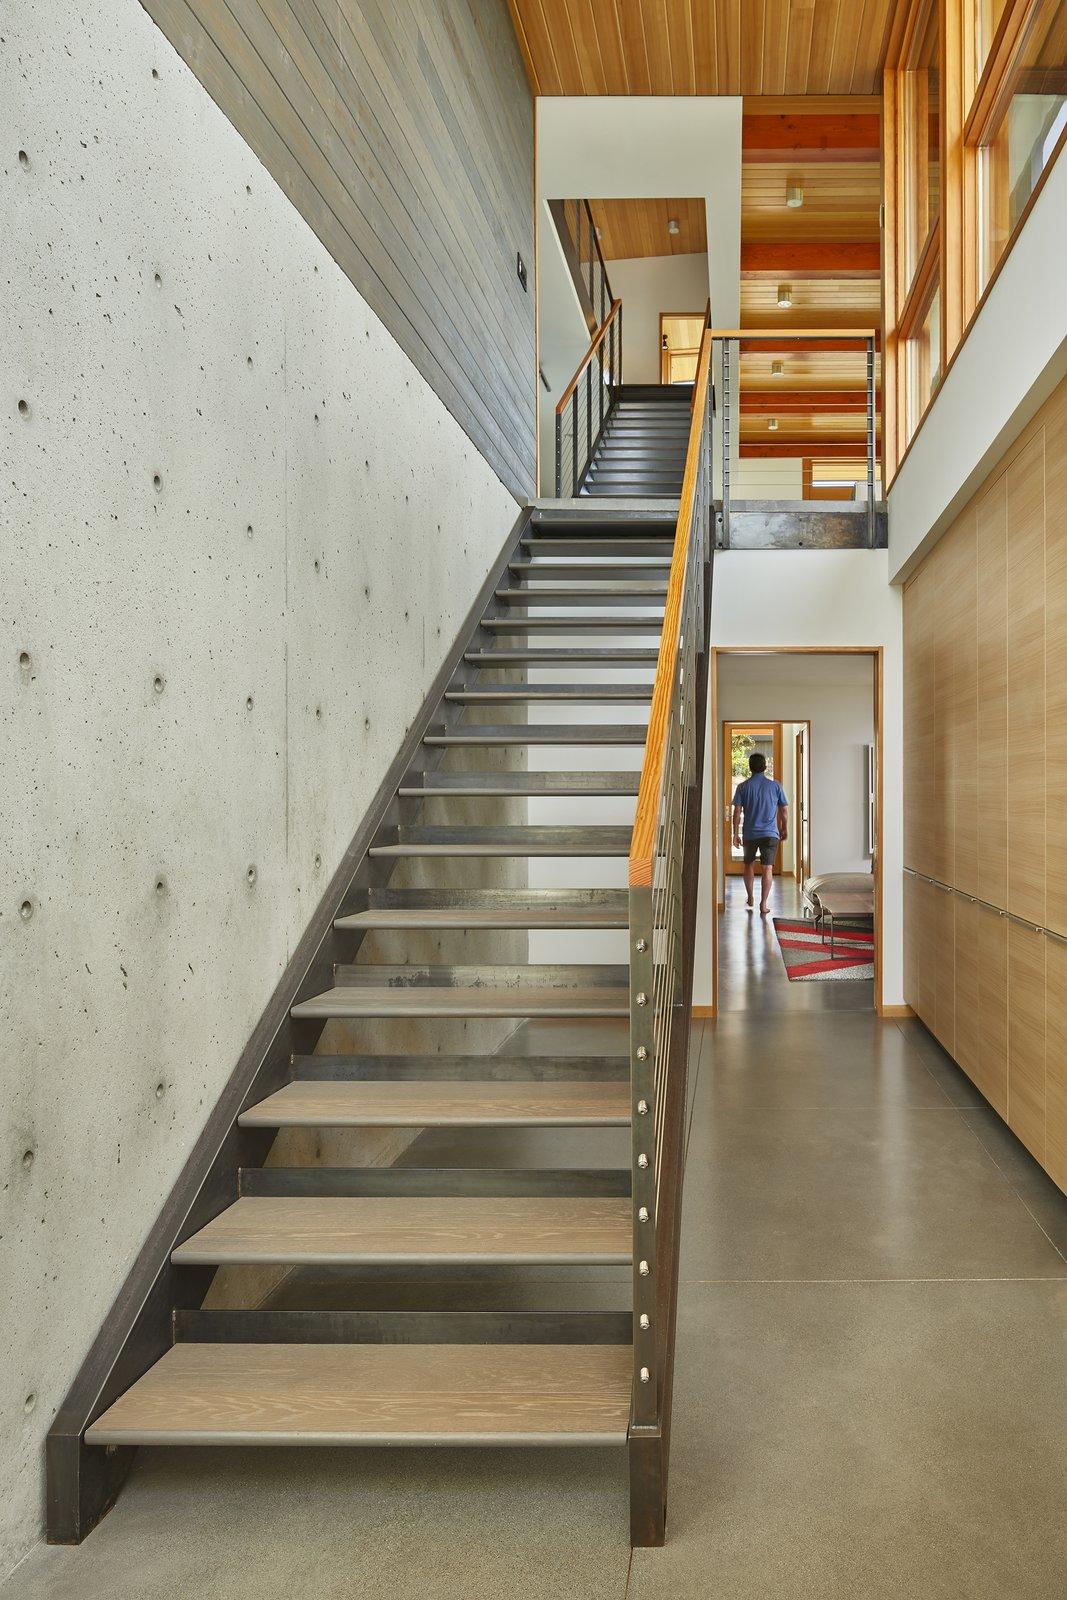 Staircase, Wood Tread, Metal Tread, and Metal Railing  Issaquah Highlands Residence by Studio Zerbey Architecture & Design